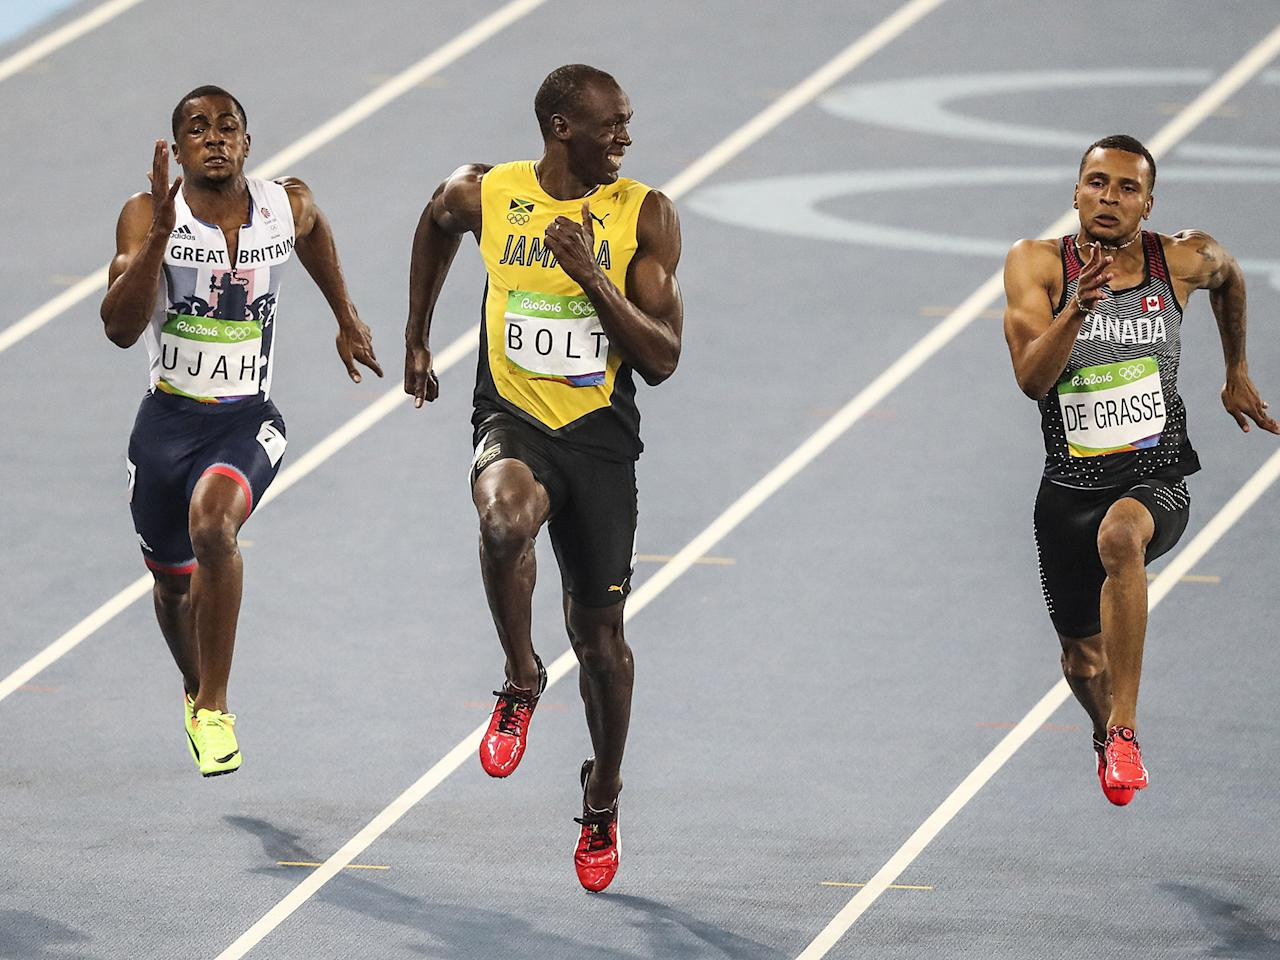 <p>On Saturday at the world championships of track and field in London, Usain Bolt will run what he has said repeatedly—for the better part of five years—will be the last individual race of his career, in the final of the 100 meters. He is expected to run on Jamaica's 4X100-meter relay a week later, which will be his final appearance on any track. And then he will be gone.</p><p>Probably. Let's get this out of the way right up here: I understand that there is cynicism about Bolt's retirement and a smirking assumption that he will unretire at some point. Sure. Maybe he will. He's only 30 years old (31 on Aug. 21) and there's still good money in being Bolt on the track. But I think there's a good chance this retirement will take. The usual reason: Bolt has never loved training and he can finally put that behind him. (He also doesn't love daylong photo shoots and many of the other duties required of millionaire celebrity athletes, although he's all about many of the other perks). A more tangible reason: He's older and slower—Bolt has run faster than 9.80 seconds in the 100 meters only twice since the 2012 Olympics, at the finals of the 2013 and '15 worlds. His winning time in Rio was 9.81. His untouchable world record of 9.58 is eight years old.</p><p></p><p>He has spent a decade or more managing chronic back issues. The job of being Bolt, while still lucrative, is more difficult. Even if he were to stick around, there's no guarantee that he will keep winning races. There's no guarantee that he will win Saturday (although the rest of the world hasn't torn up the 100 meters this year, either; Bolt's best is only 9.95, but the only sub 9.90 performance this year was a 9.82 by 21-year-old Christian Coleman of the U.S. two months ago at the NCAA Championship meet in Eugene. The withdrawal of Canadian Andre DeGrasse this week further weakened the field). Superman Bolt is done. It's hard to imagine him grinding out another year or two, or all the way to 2020, running in the 